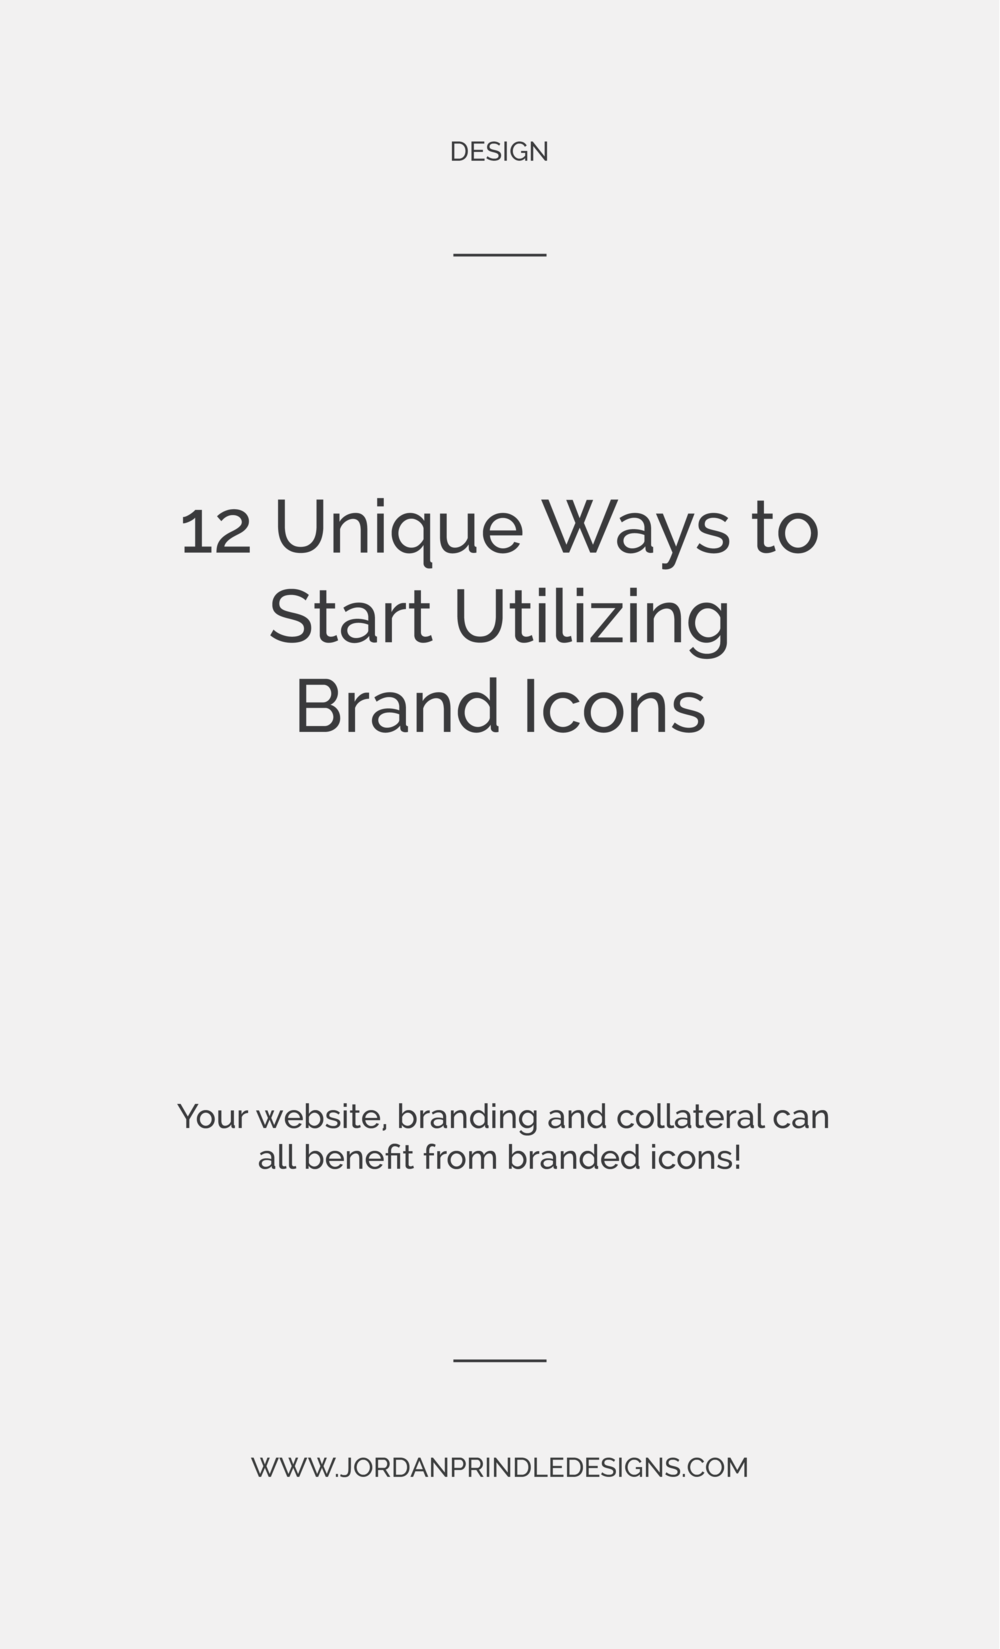 12 Ways to Utilize Custom Brand Icons | Whether you offer newsletters, blog categories or content upgrades... icons are a great way to diversify your brands visual identity. Read the full list at www.jordanprindledesigns.com #brandicons #icondesign #graphicdesigntips